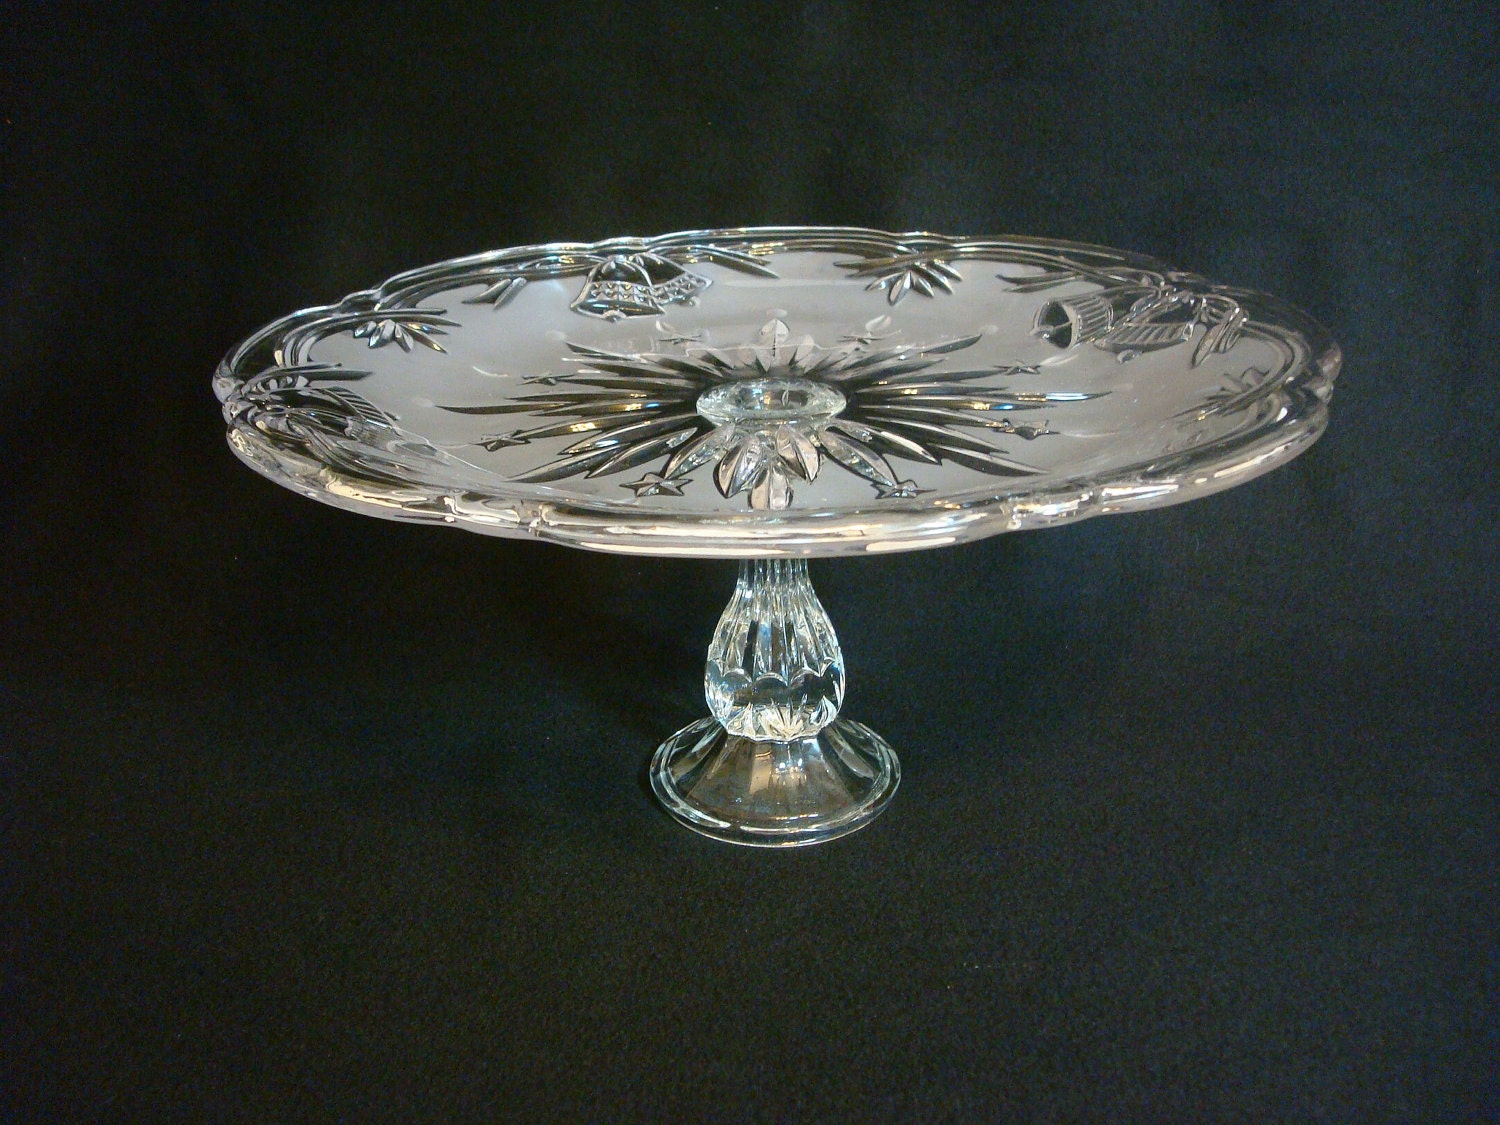 Short pedestal wedding cake stand made with re-purposed glass.  Frosted glass with wedding bells.